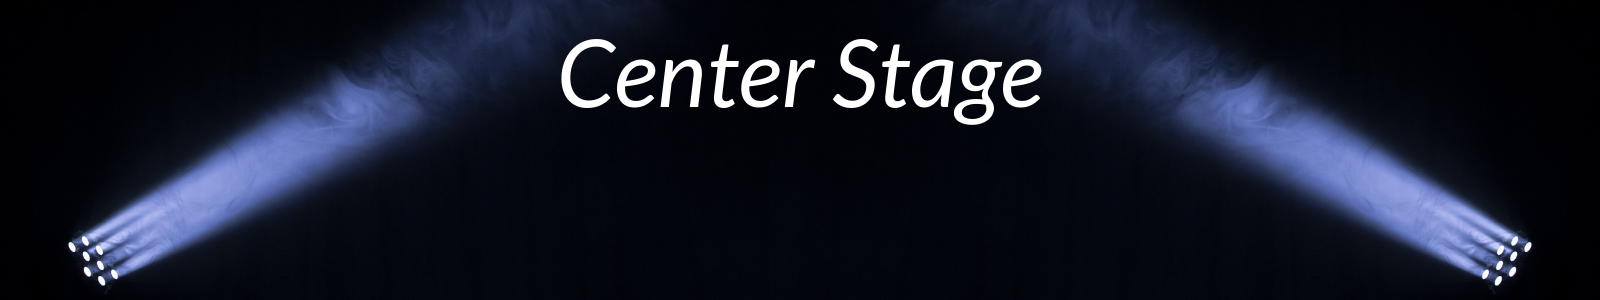 Center-Stage-web-header.png